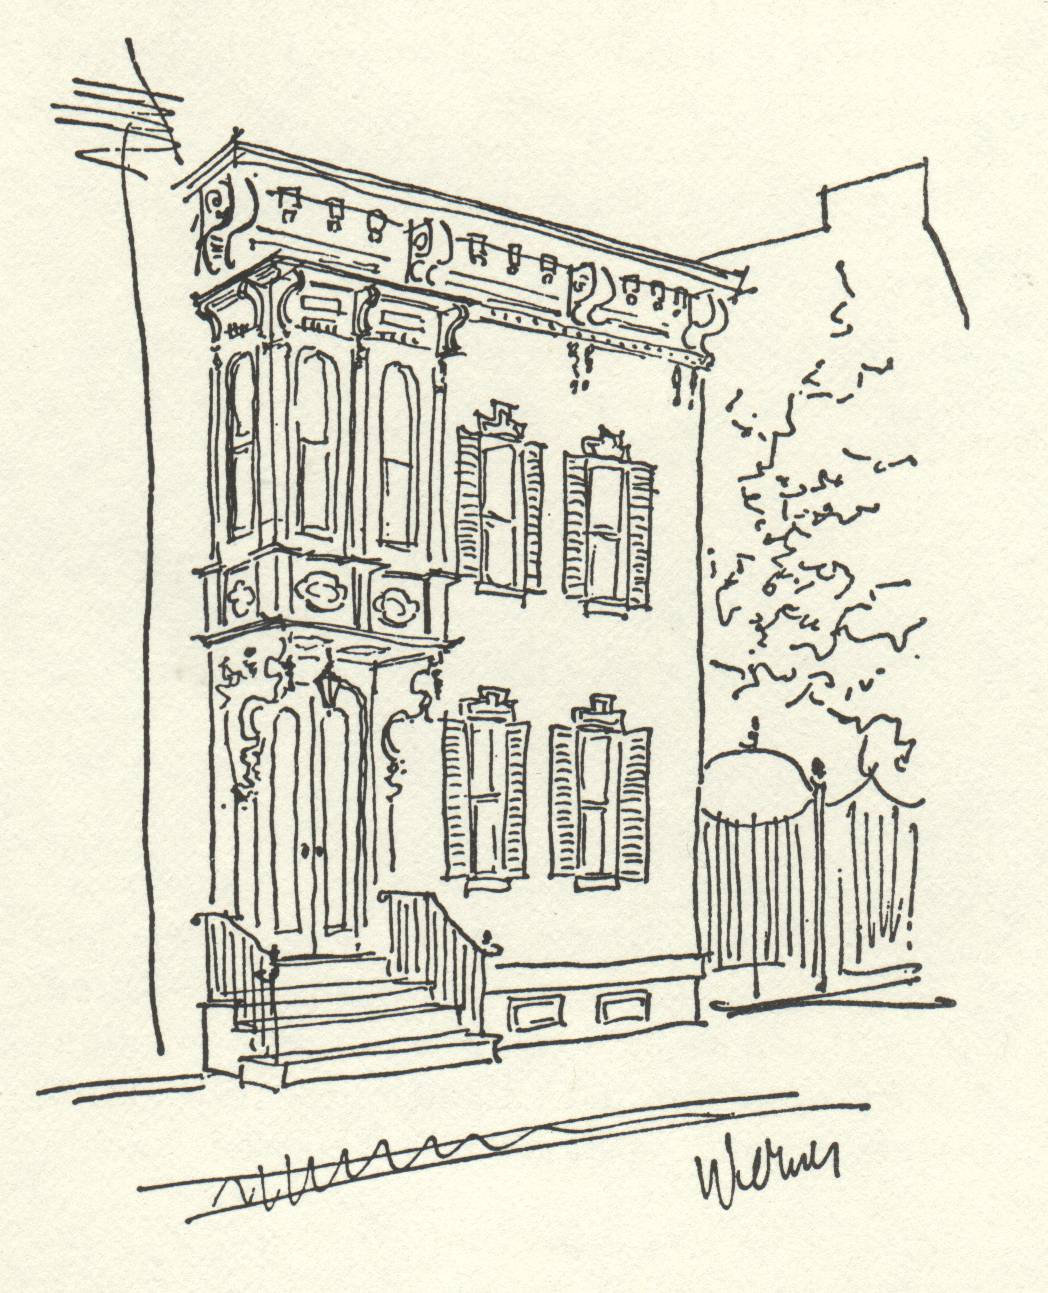 drawing of historic row house